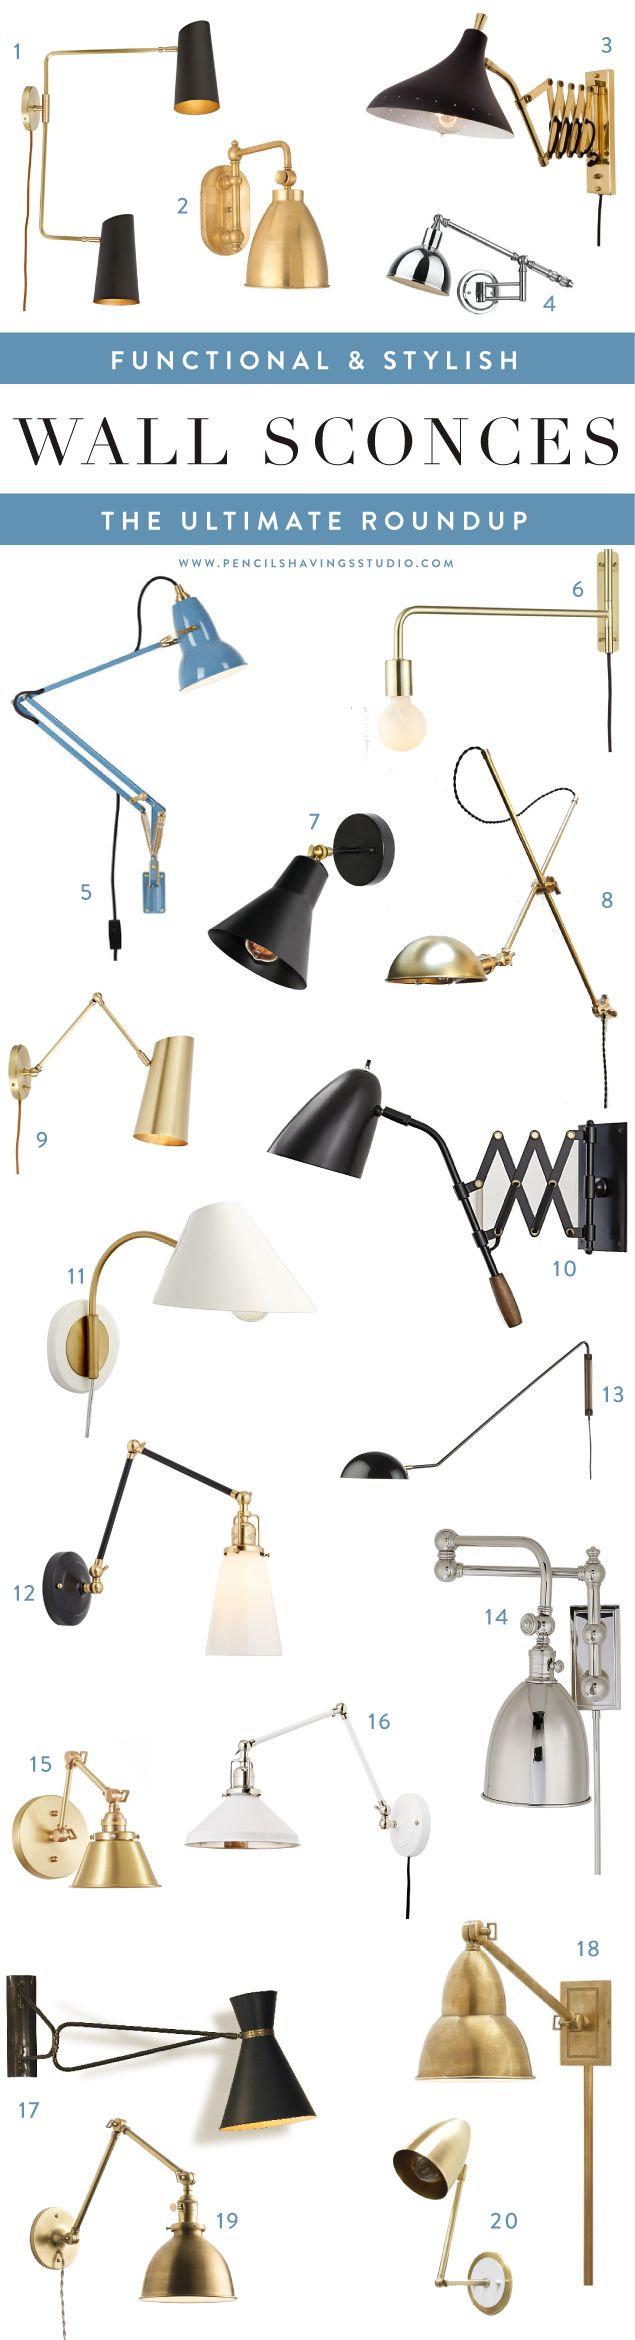 The best in articulating wall sconces, swing arm wall sconces, adjustable wall sconces and more - a roundup of all my favorite sconces in a variety of finishes including brass sconces, black sconces, industrial sconces and more. www.pencilshavingsstudio.c